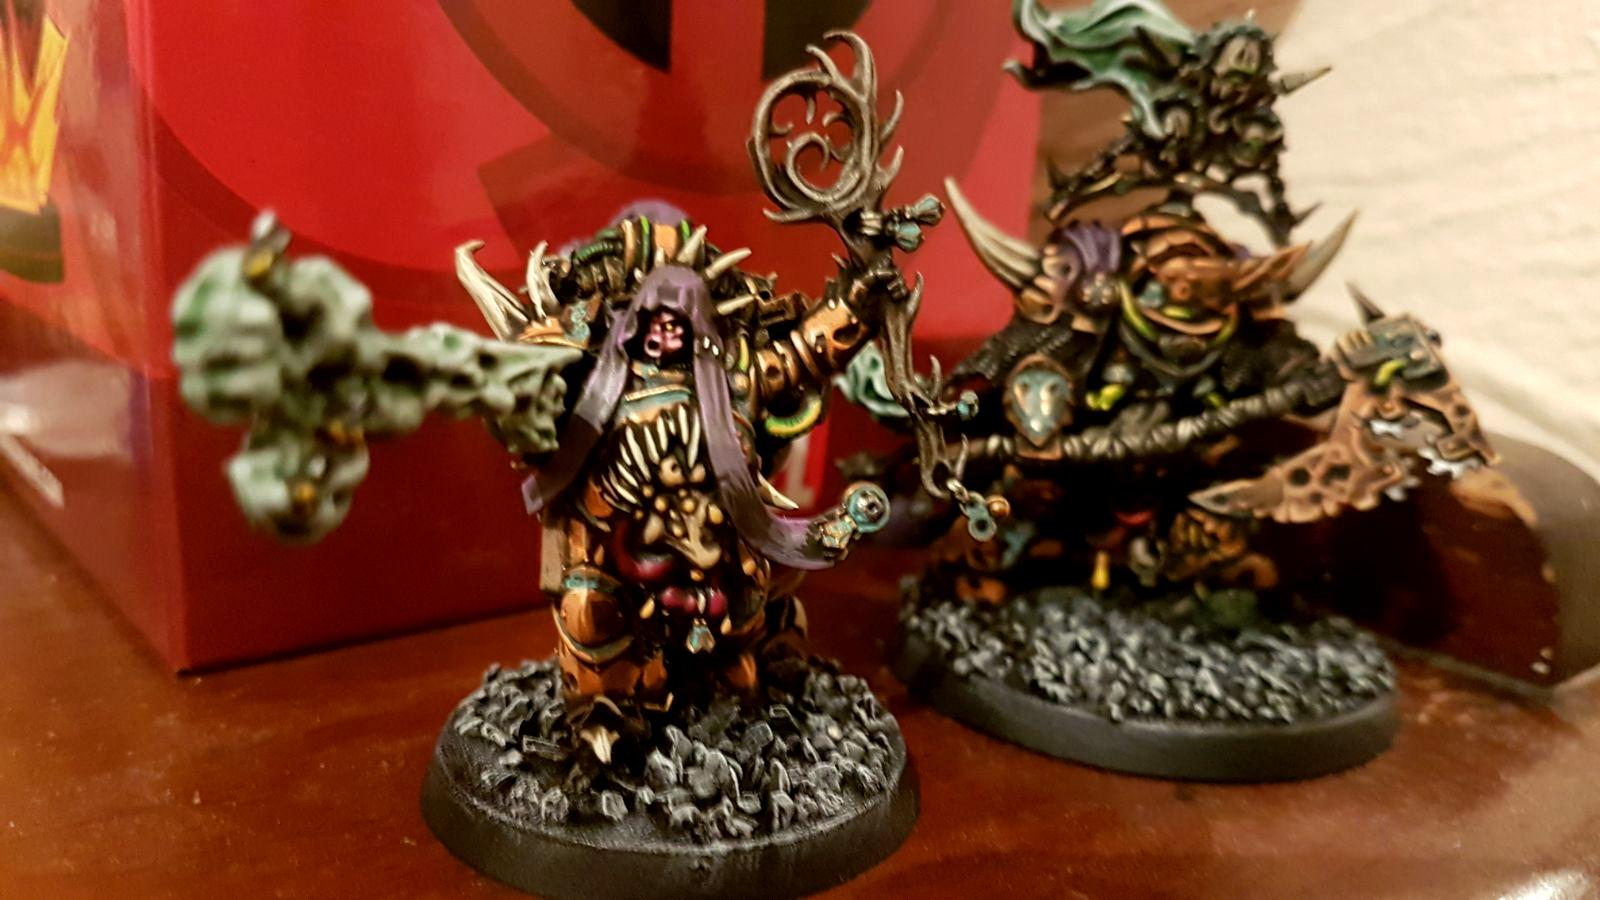 Chaos Space Marines, Corrosion, Death Guard, Lord Of Contagion, Malignant Plaguecaster, Nurgle, Orange, Oxidisation, Patina, Plague Marines, Rust